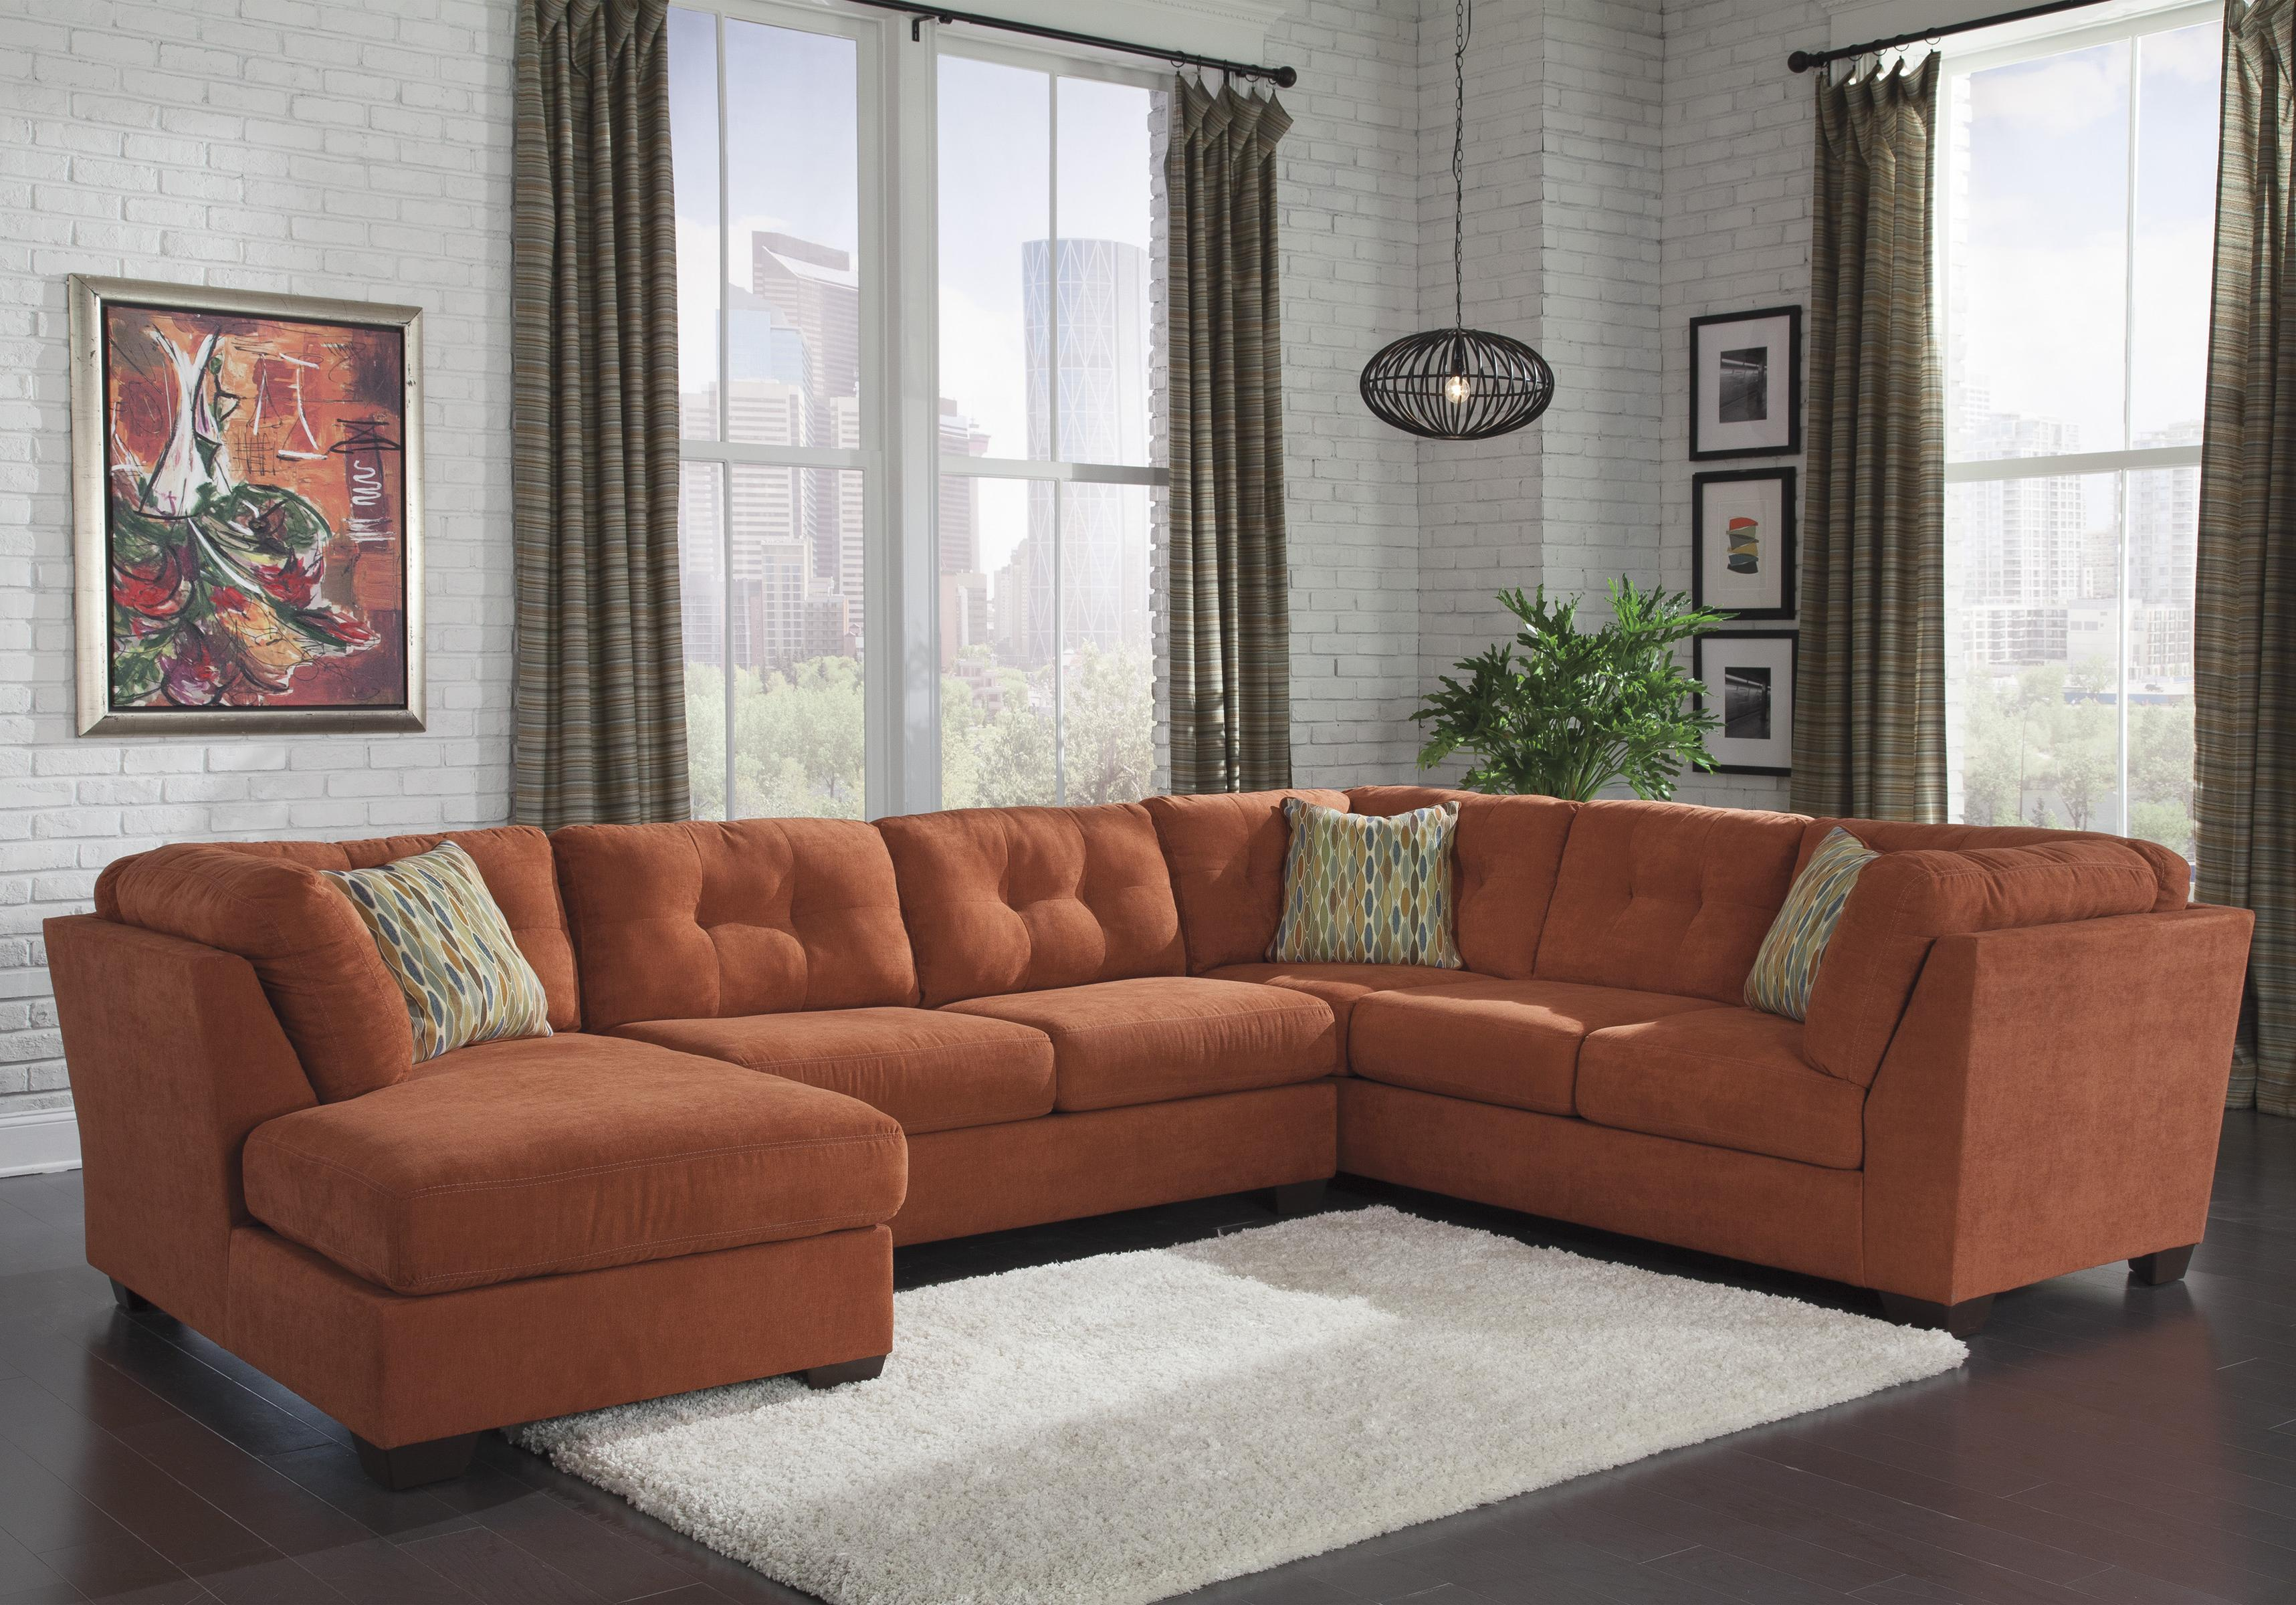 Benchcraft Delta City - Rust 3-Piece Modular Sectional with Left Chaise - Item Number: 1970116+34+38